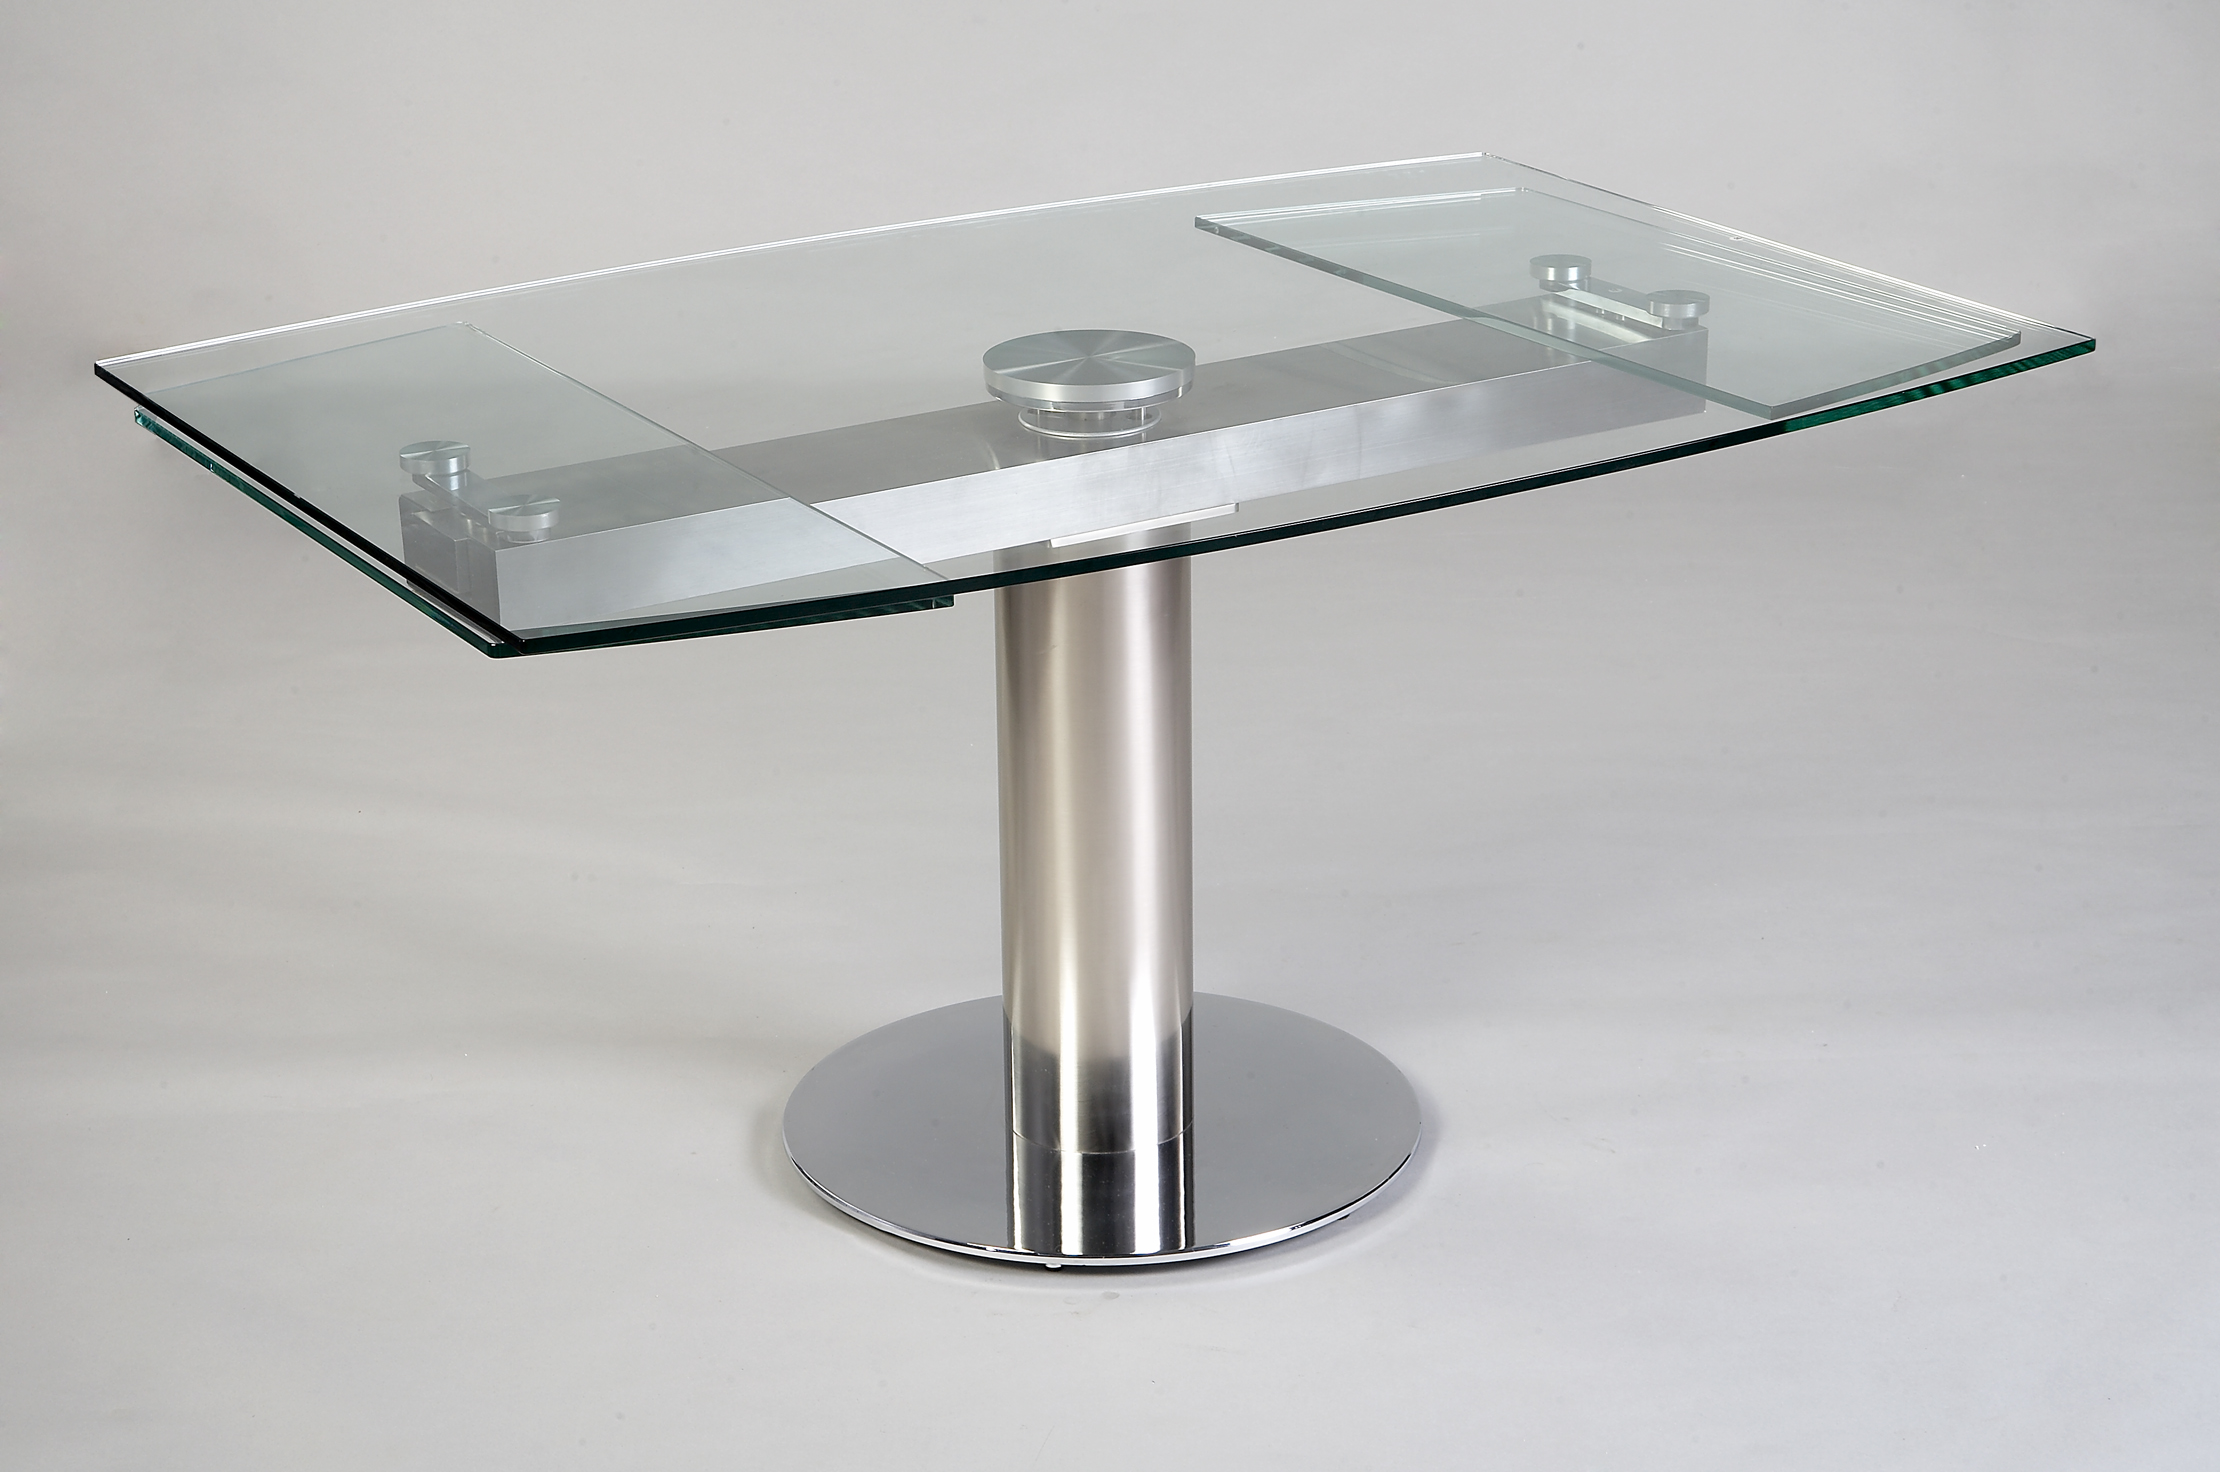 Table contemporaine en verre avec rallonge for Table de cuisine moderne en verre